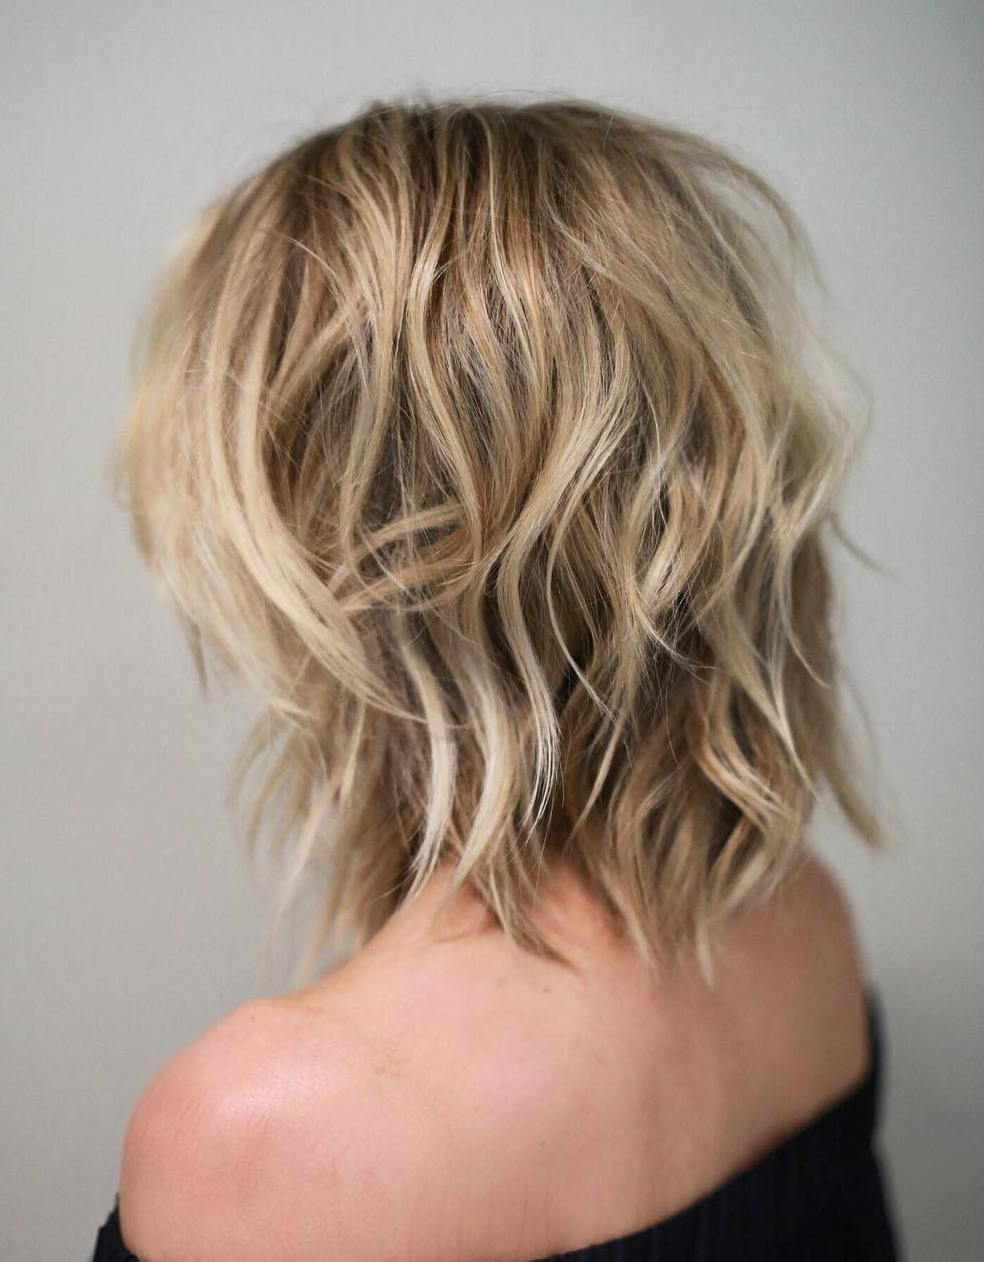 Shag Haircuts And Hairstyles In 2019 — Therighthairstyles Pertaining To Well Known Gorgeous Wavy White Shag Haircuts (View 16 of 20)